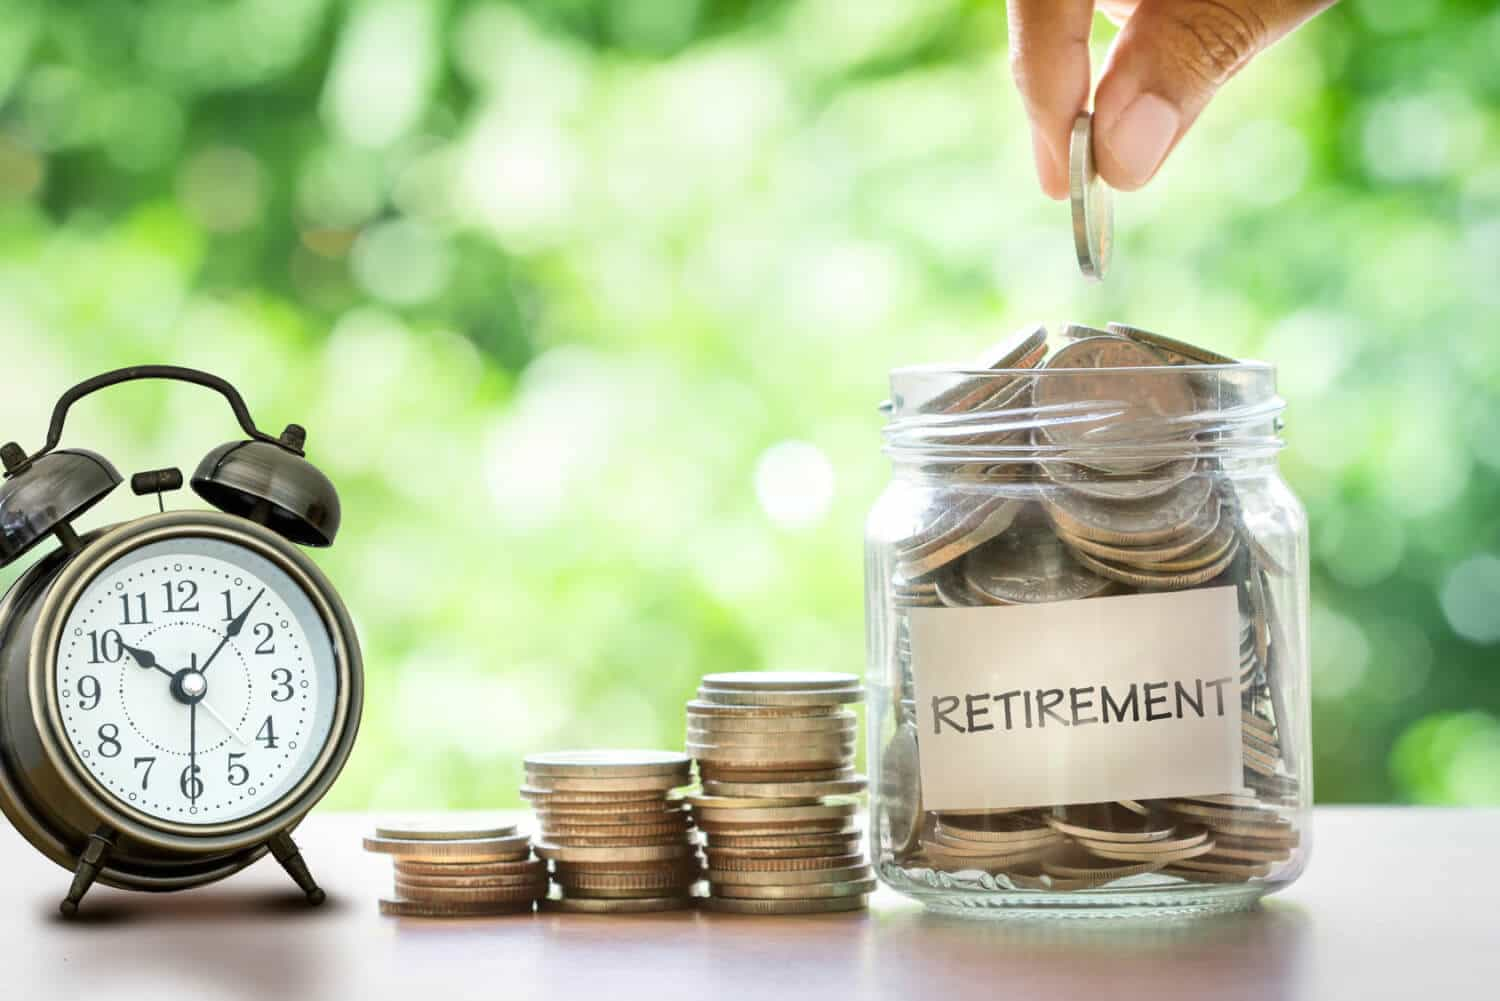 Time to think about retirement savings: Stacks of coins lead up to a retirement savings jar with an alarm clock